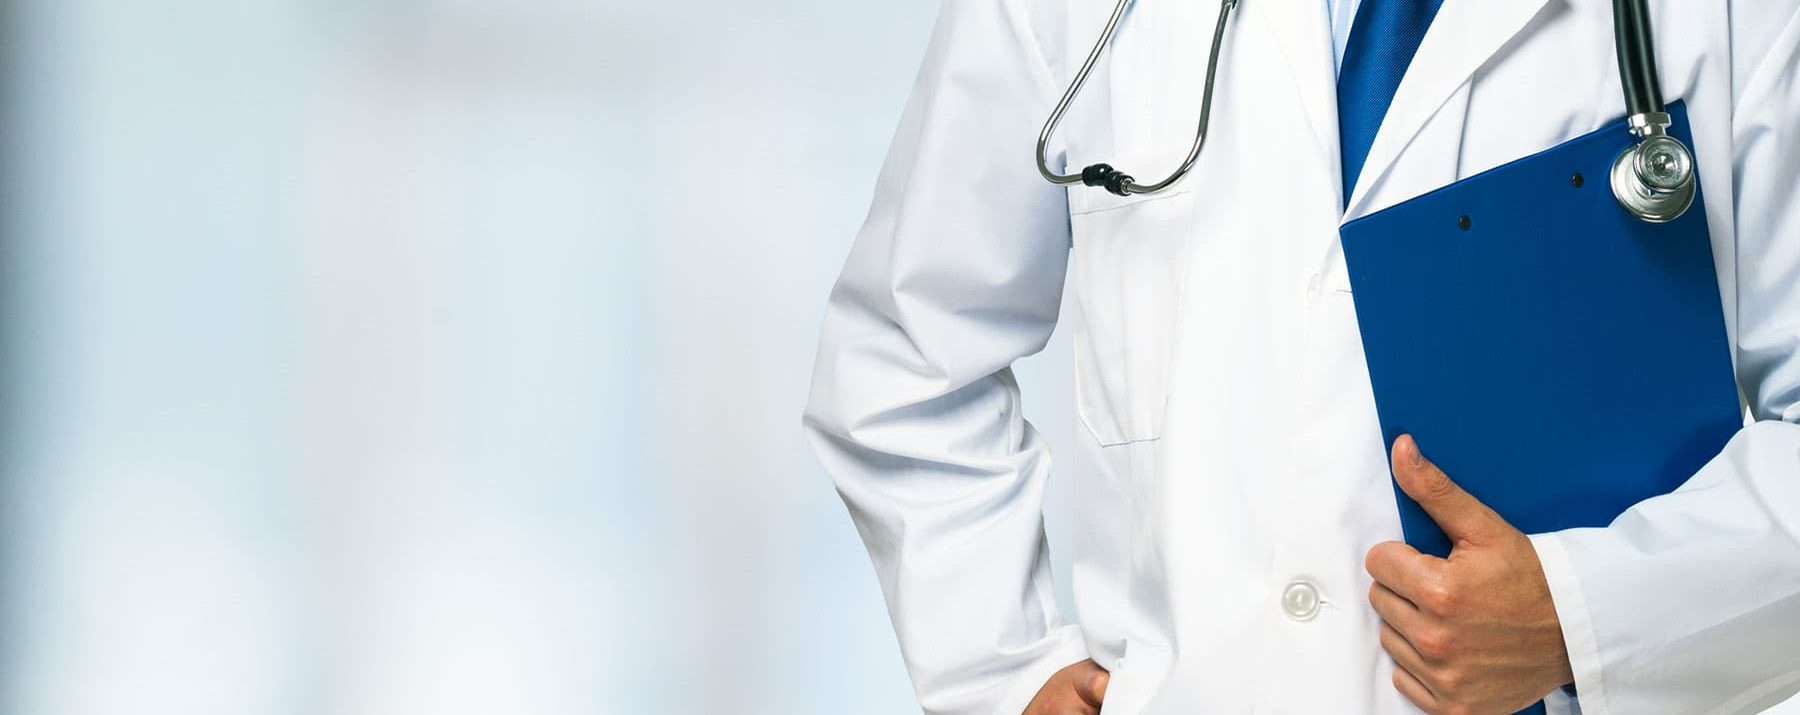 WE OFFER SPECIALIZED SERVICES A REGULAR DOCTOR'S OFFICE CANNOT